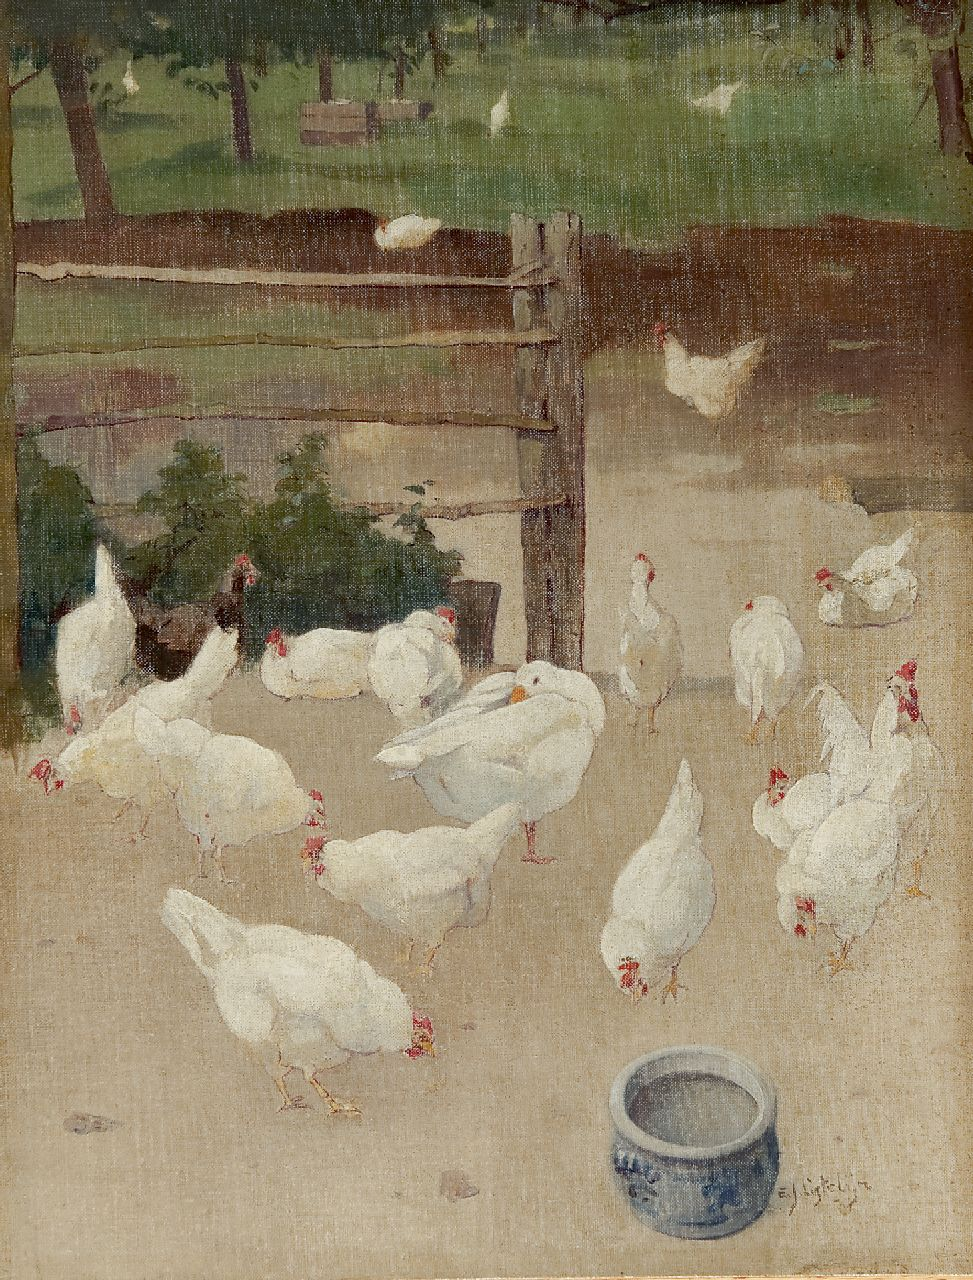 Ligtelijn E.J.  | Evert Jan Ligtelijn, A goose and chickens in the farmyard, oil on canvas laid down on panel 43.6 x 33.5 cm, signed l.r.